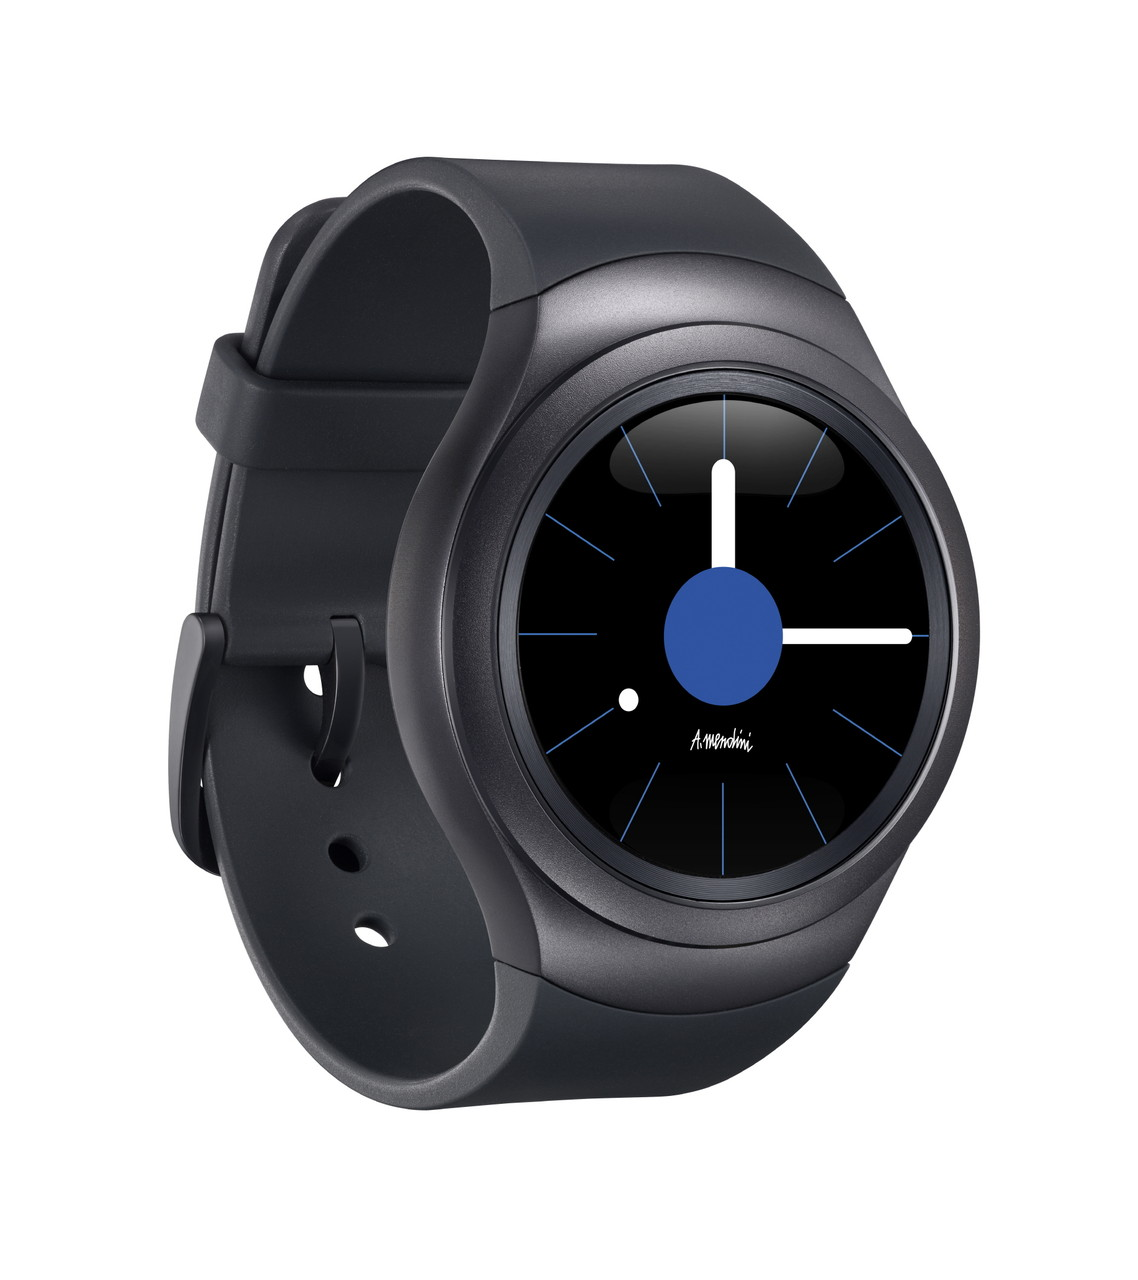 Samsung Gear S2 = Android